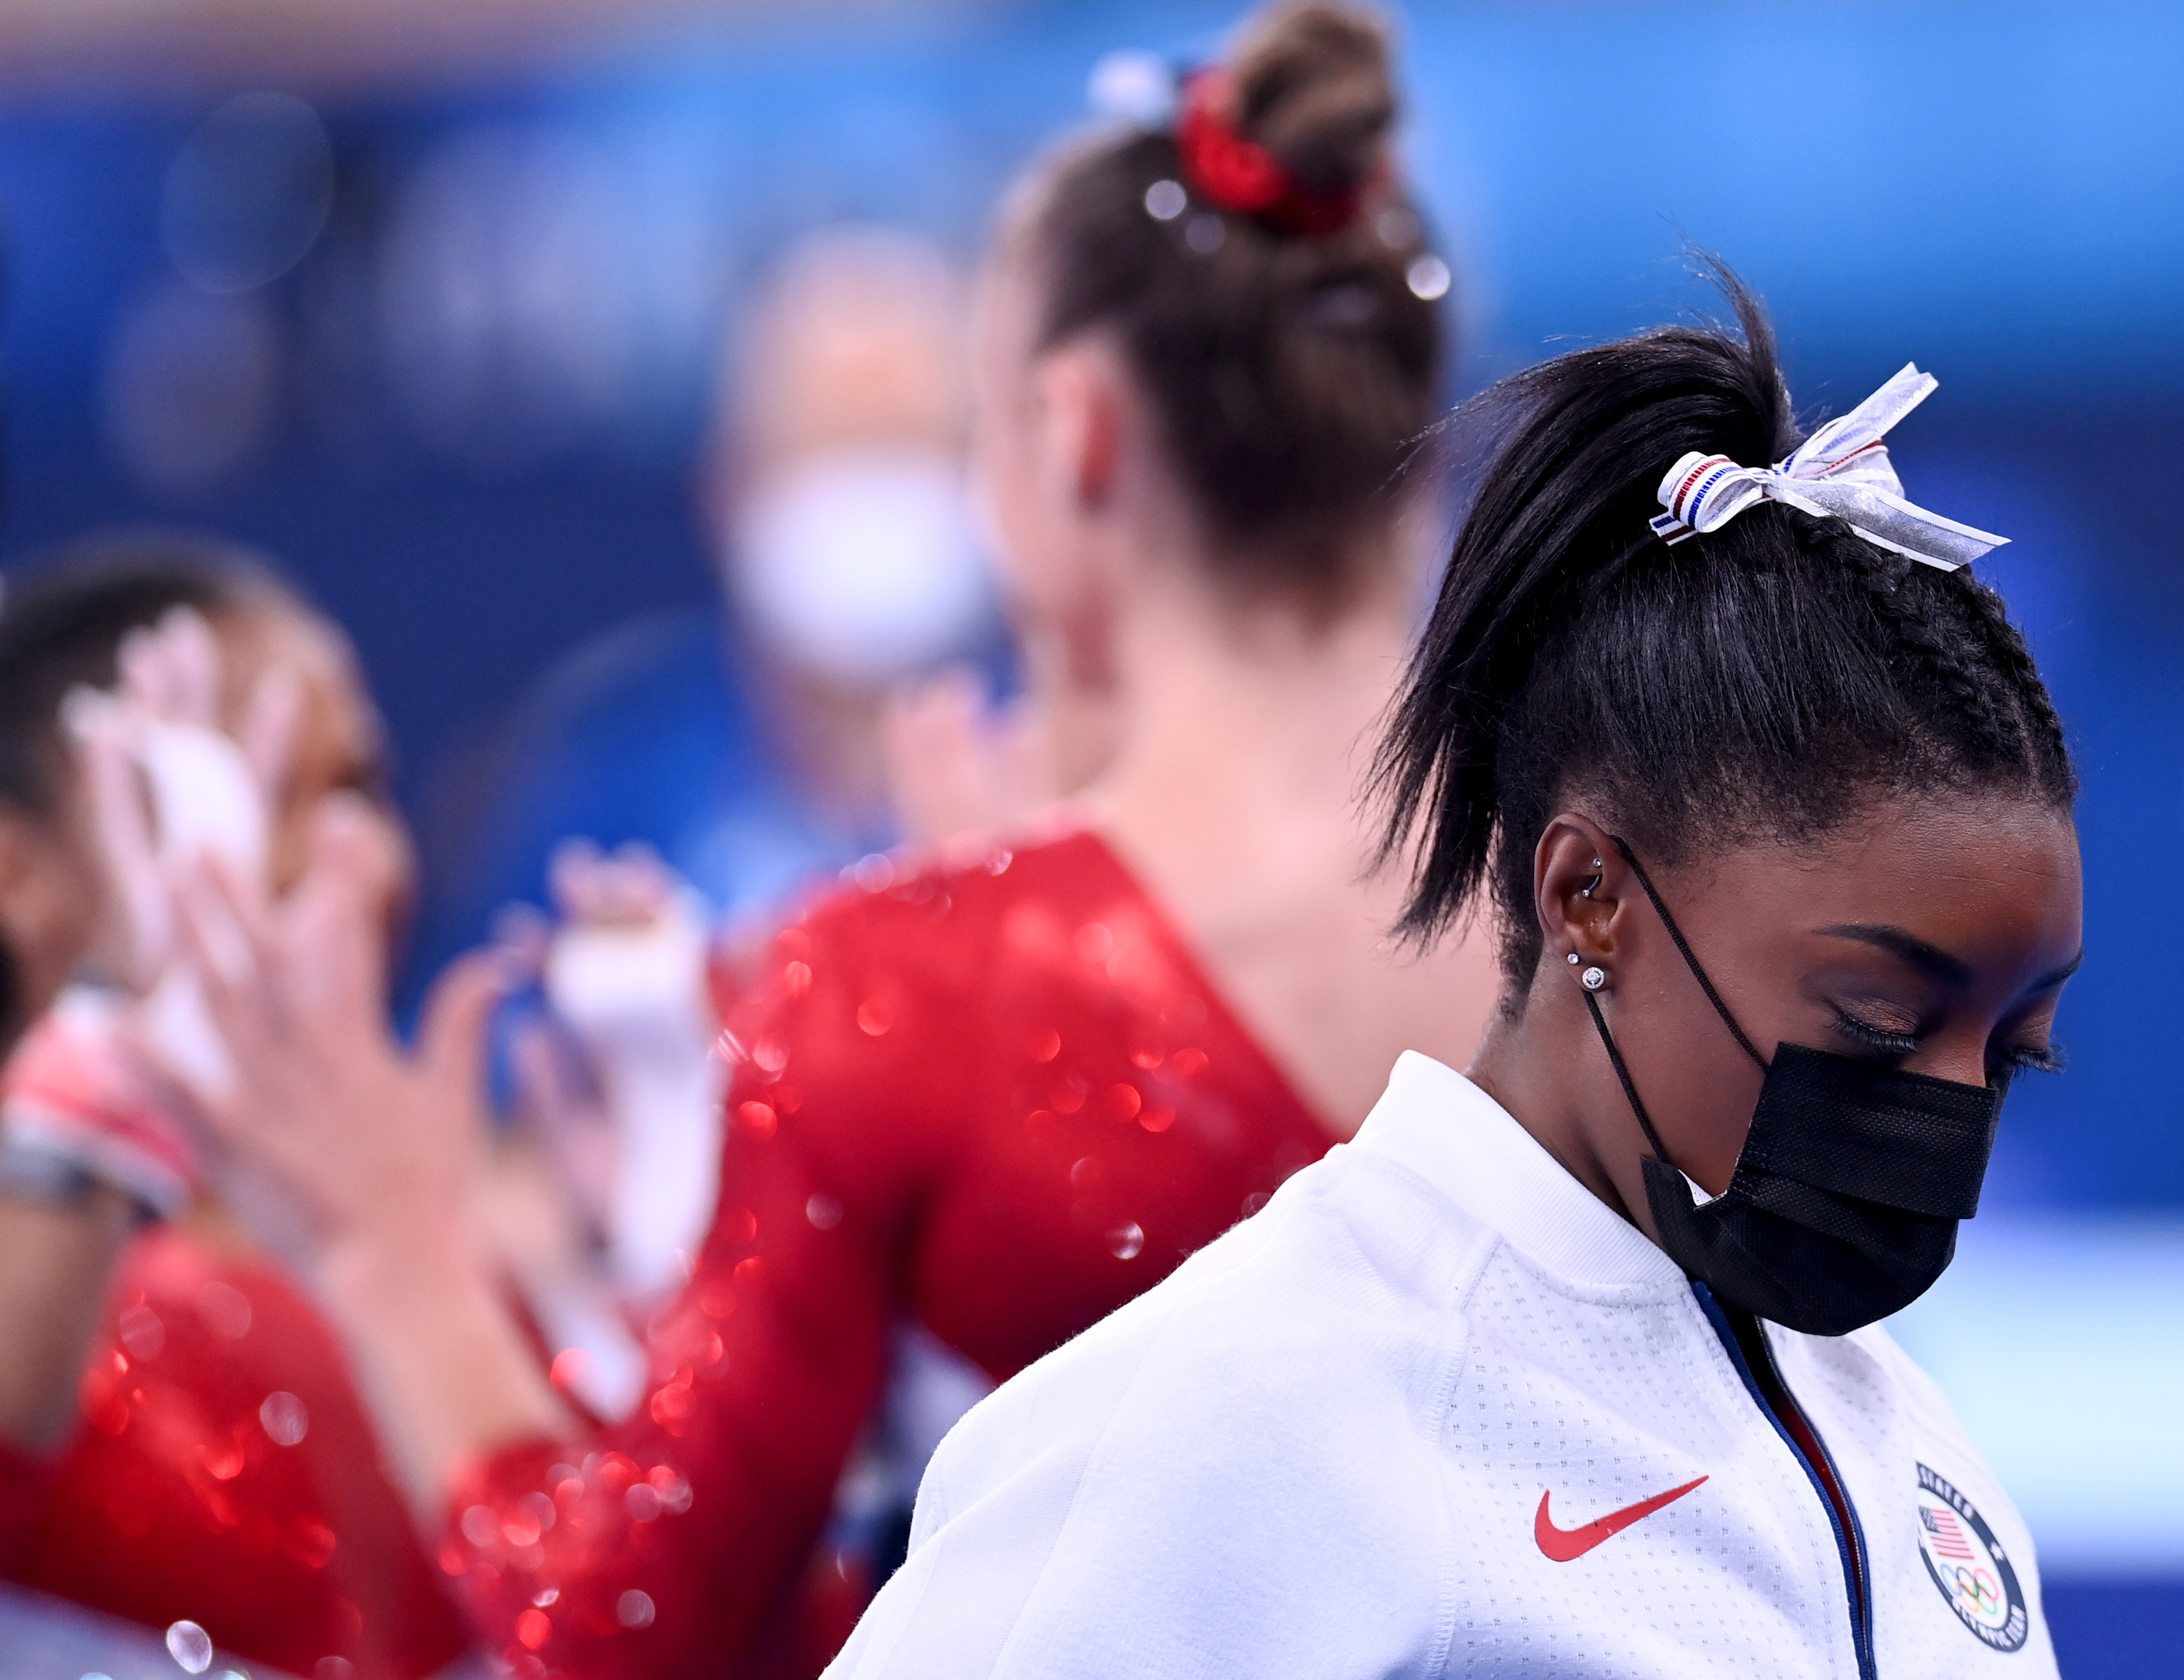 American gymnast Simone Biles watches the team finals after leaving the competition due to mental health concerns on July 27.